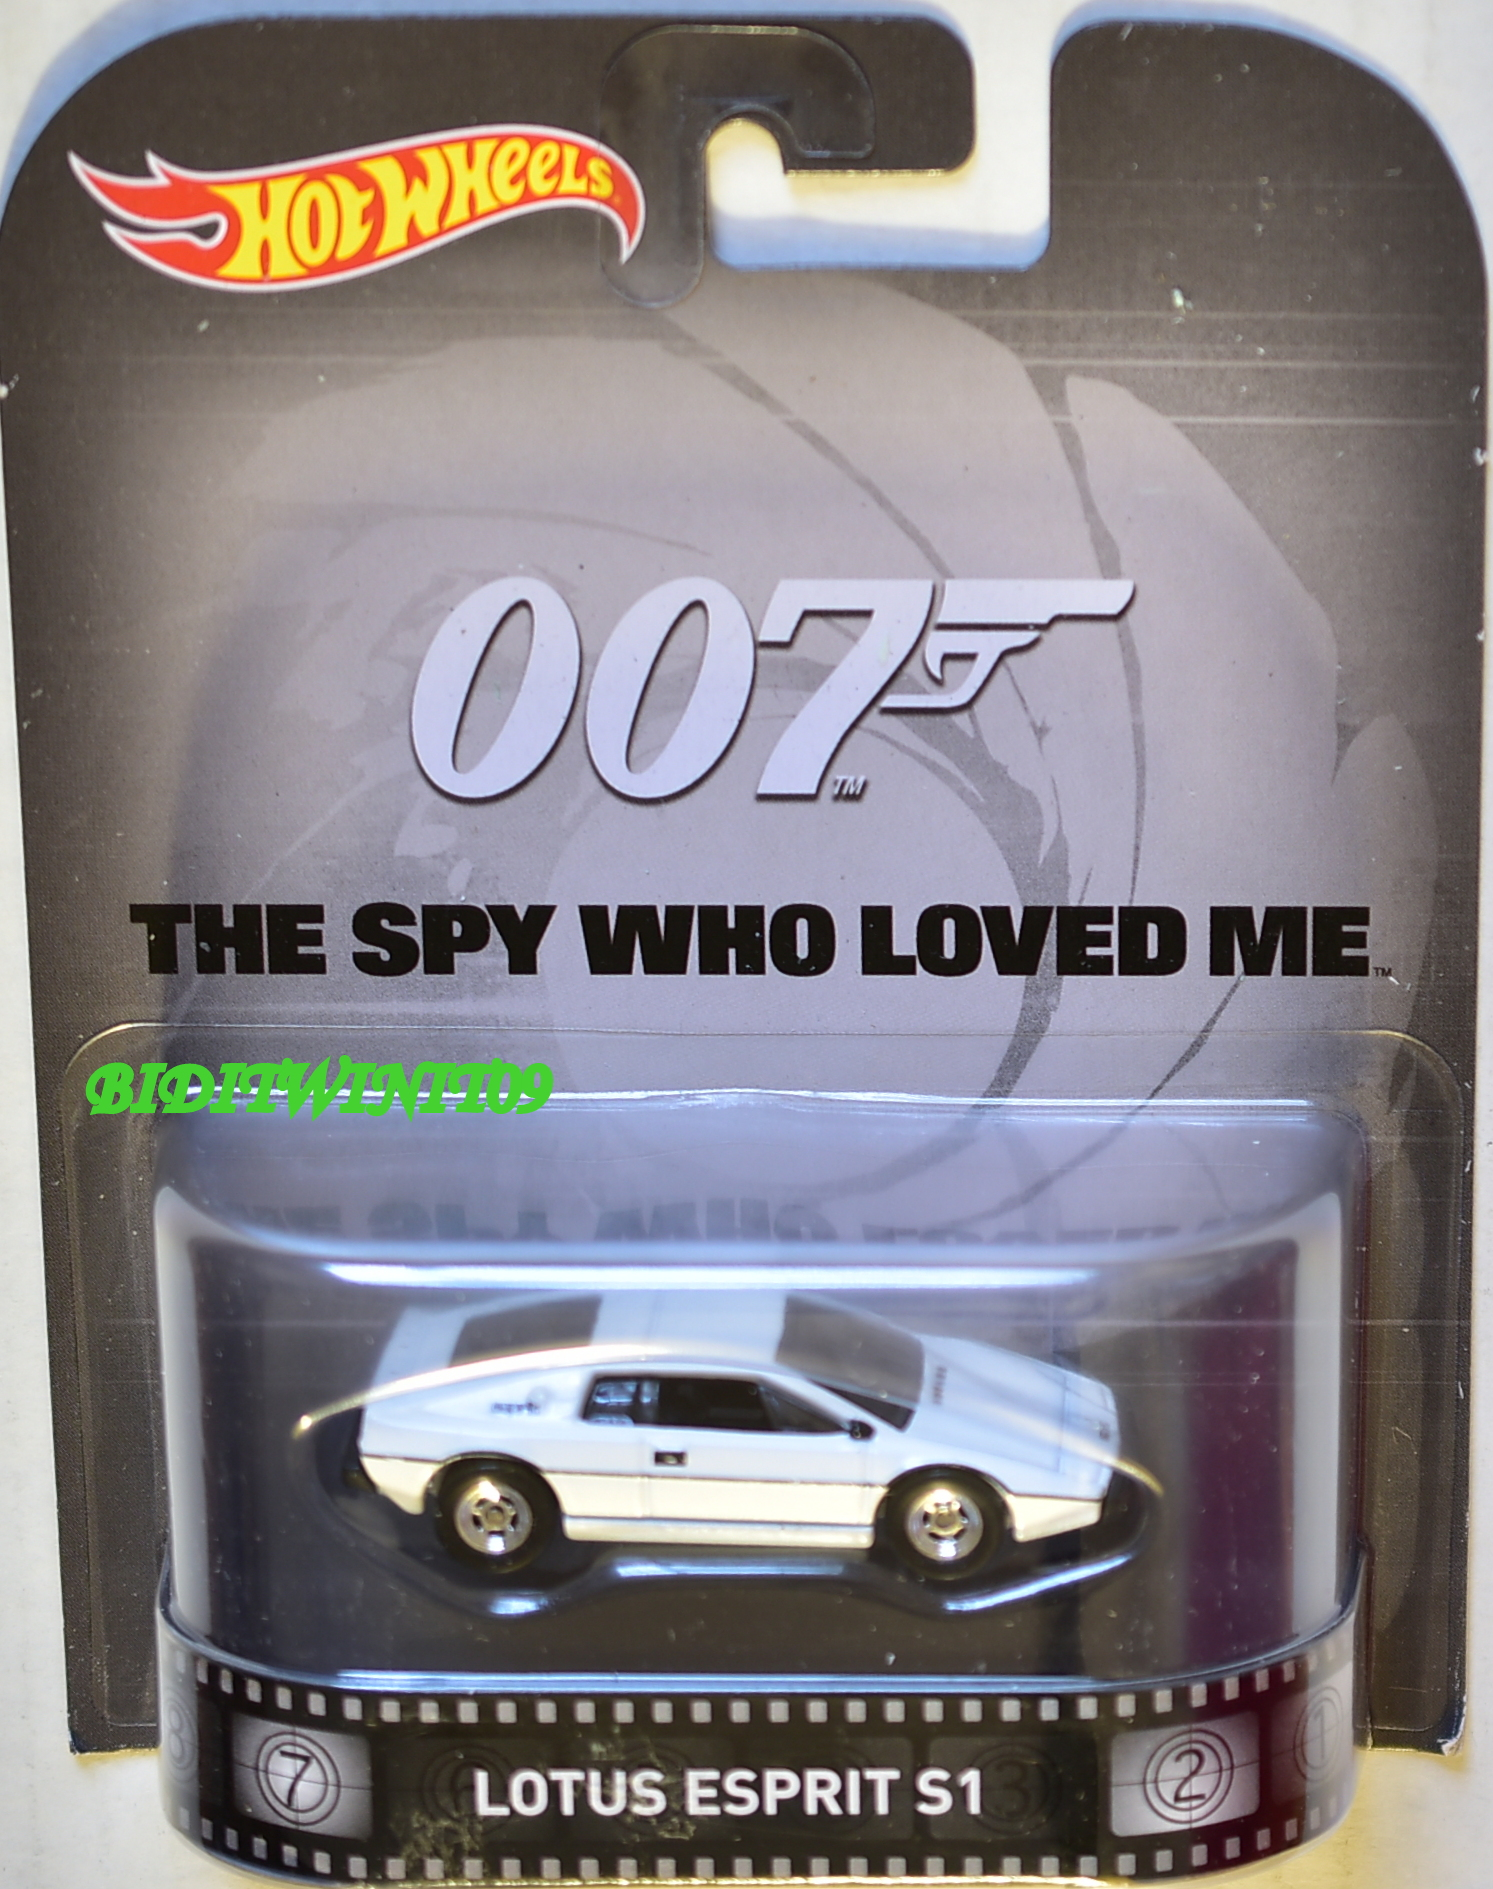 HOT WHEELS RETRO ENTERTAINMENT 007 LOTUS ESPRIT S1 WHITE